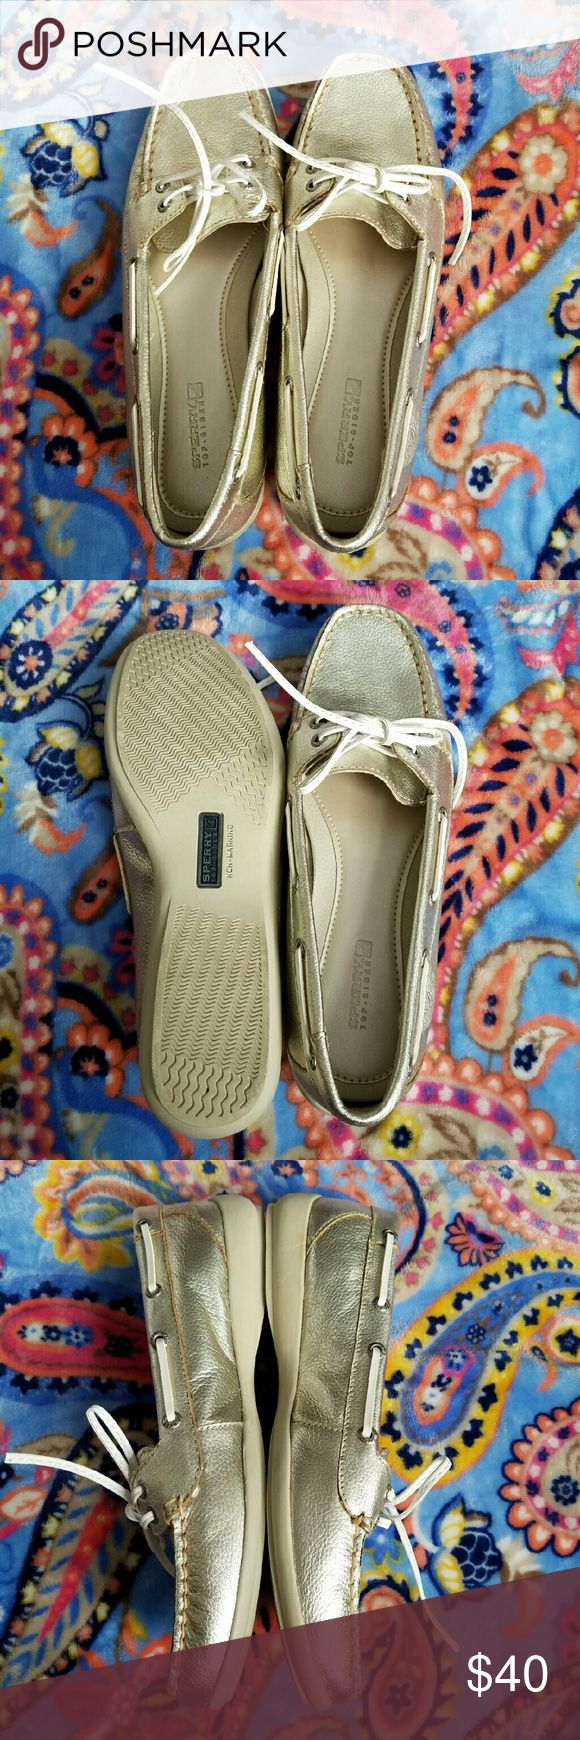 Gold Sperry Top-Siders EUC gold Sperry Top-Siders with white leather laces. Only worn once or twice. Spring is coming! Get a jump on your good weather footwear! Sperry Top-Sider Shoes